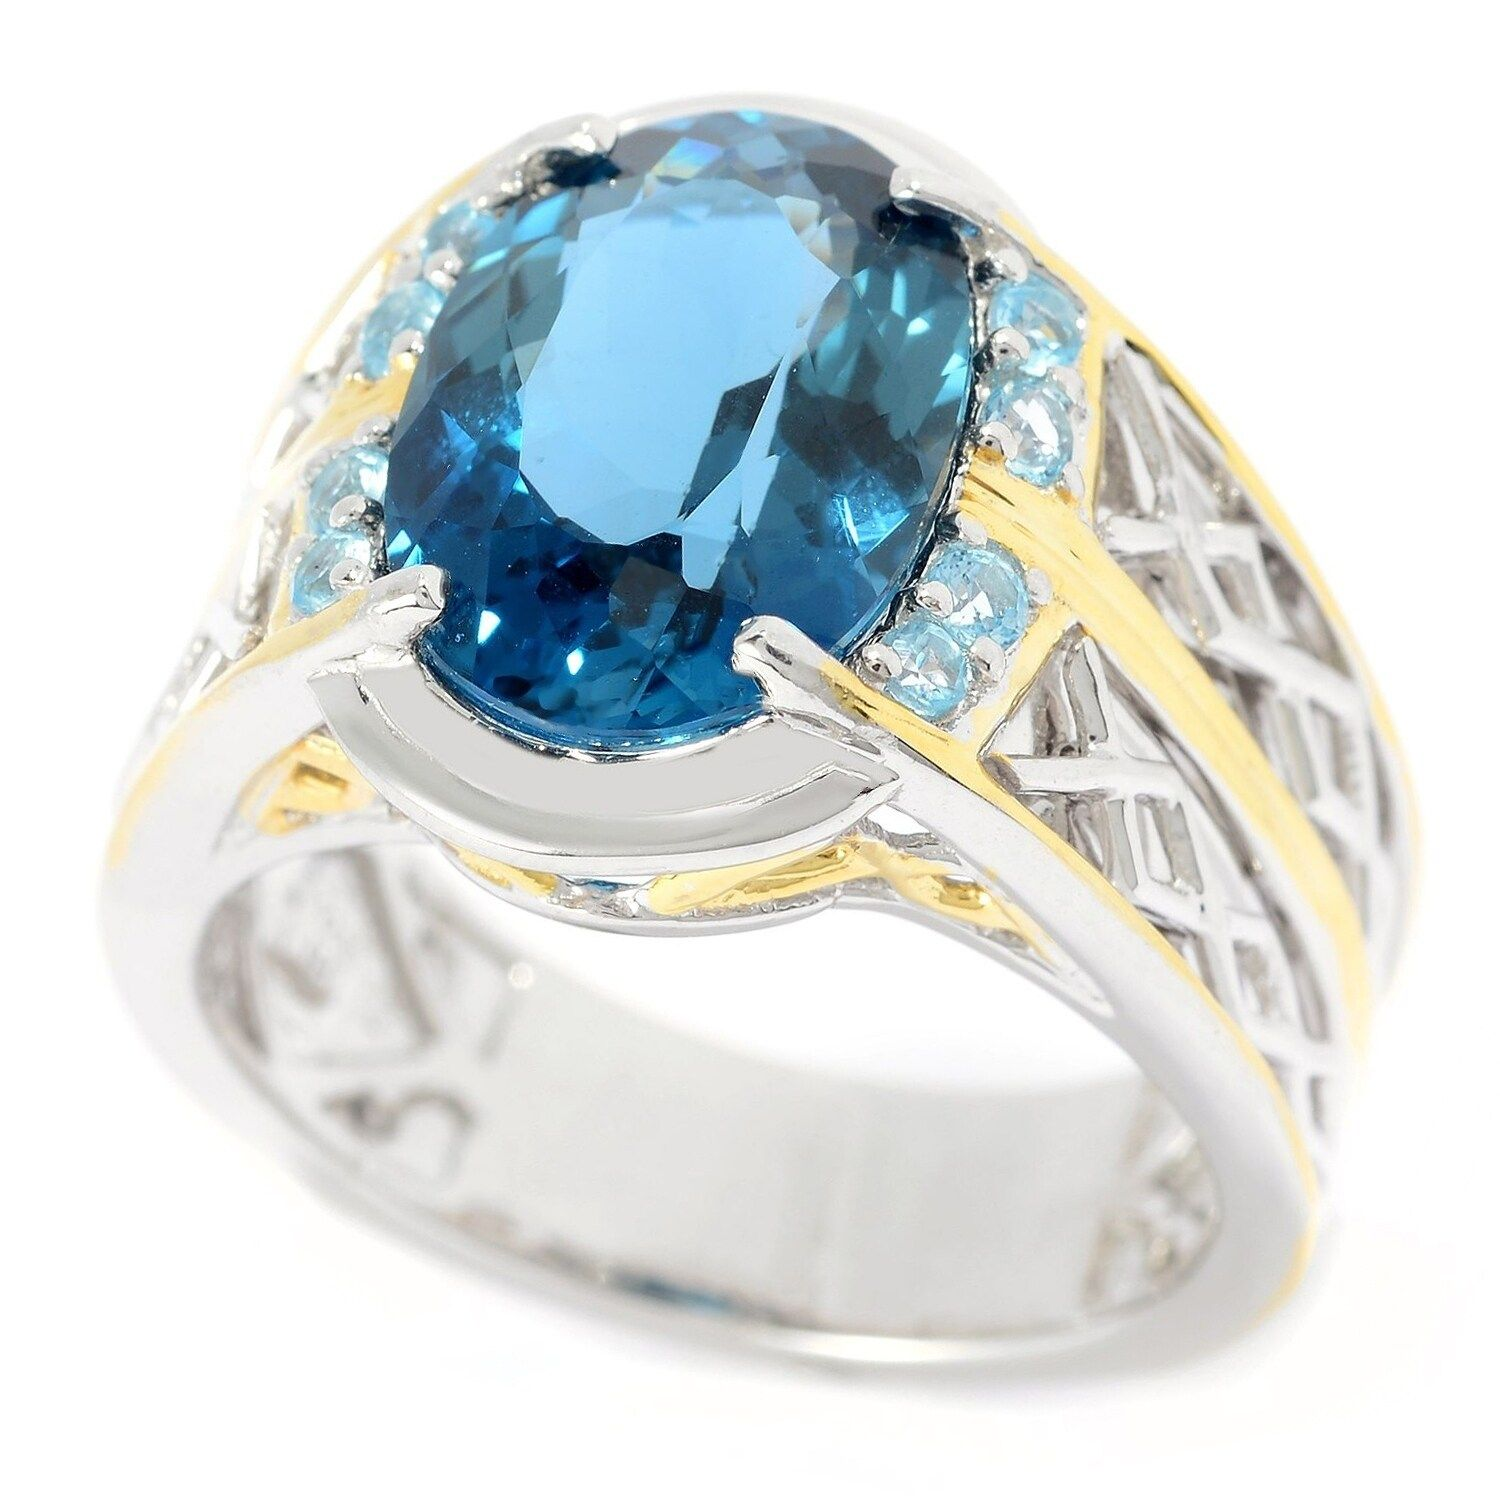 23++ Best jewelry stores in ct viral